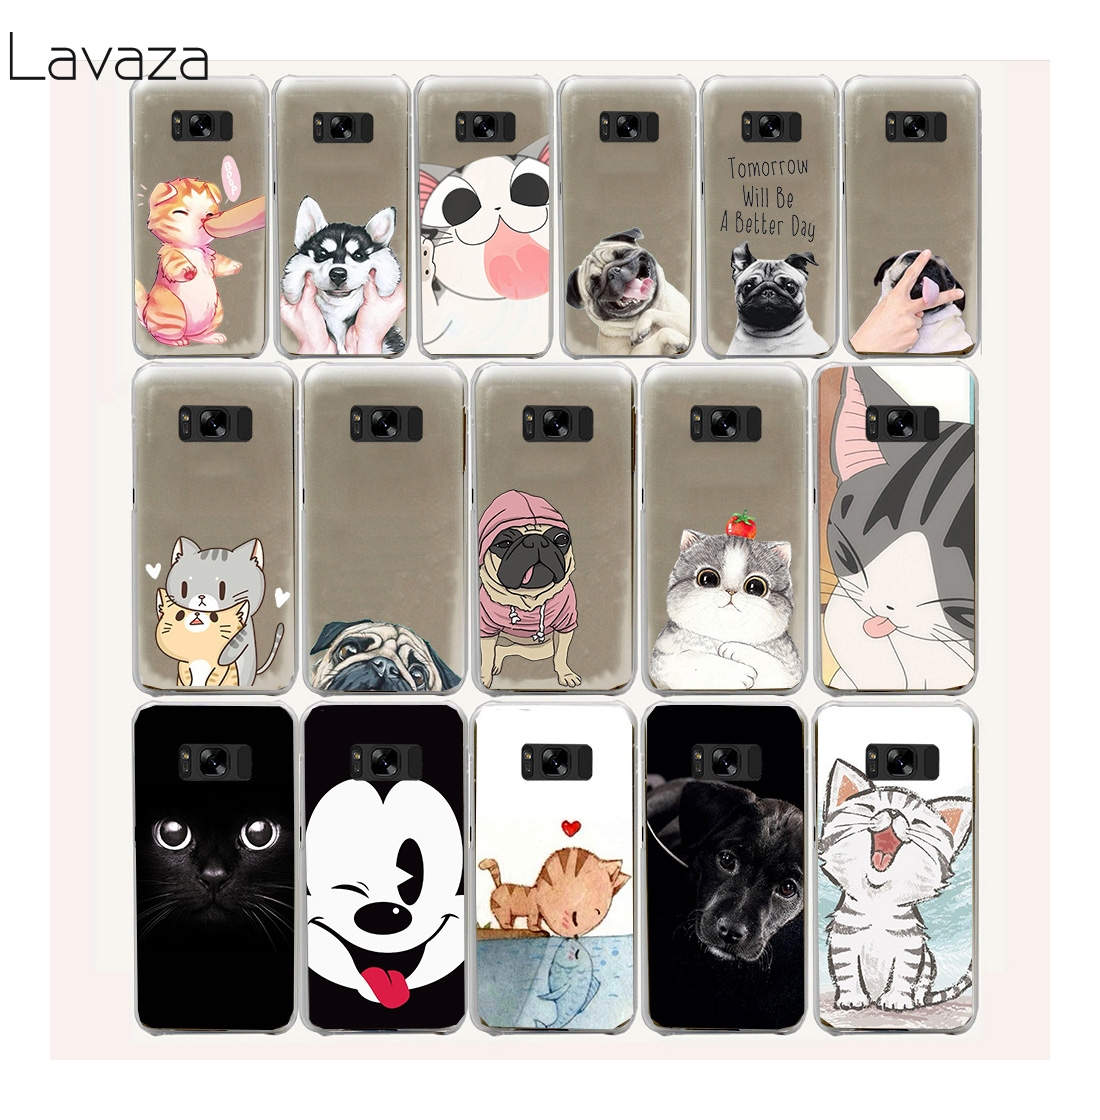 Lavaza 18FF new Pug Dog cat Design Hard Case for Samsung Galaxy S8 S9 Plus S7 S6 Edge S5 S4 S3 S2 Mini Plus ...